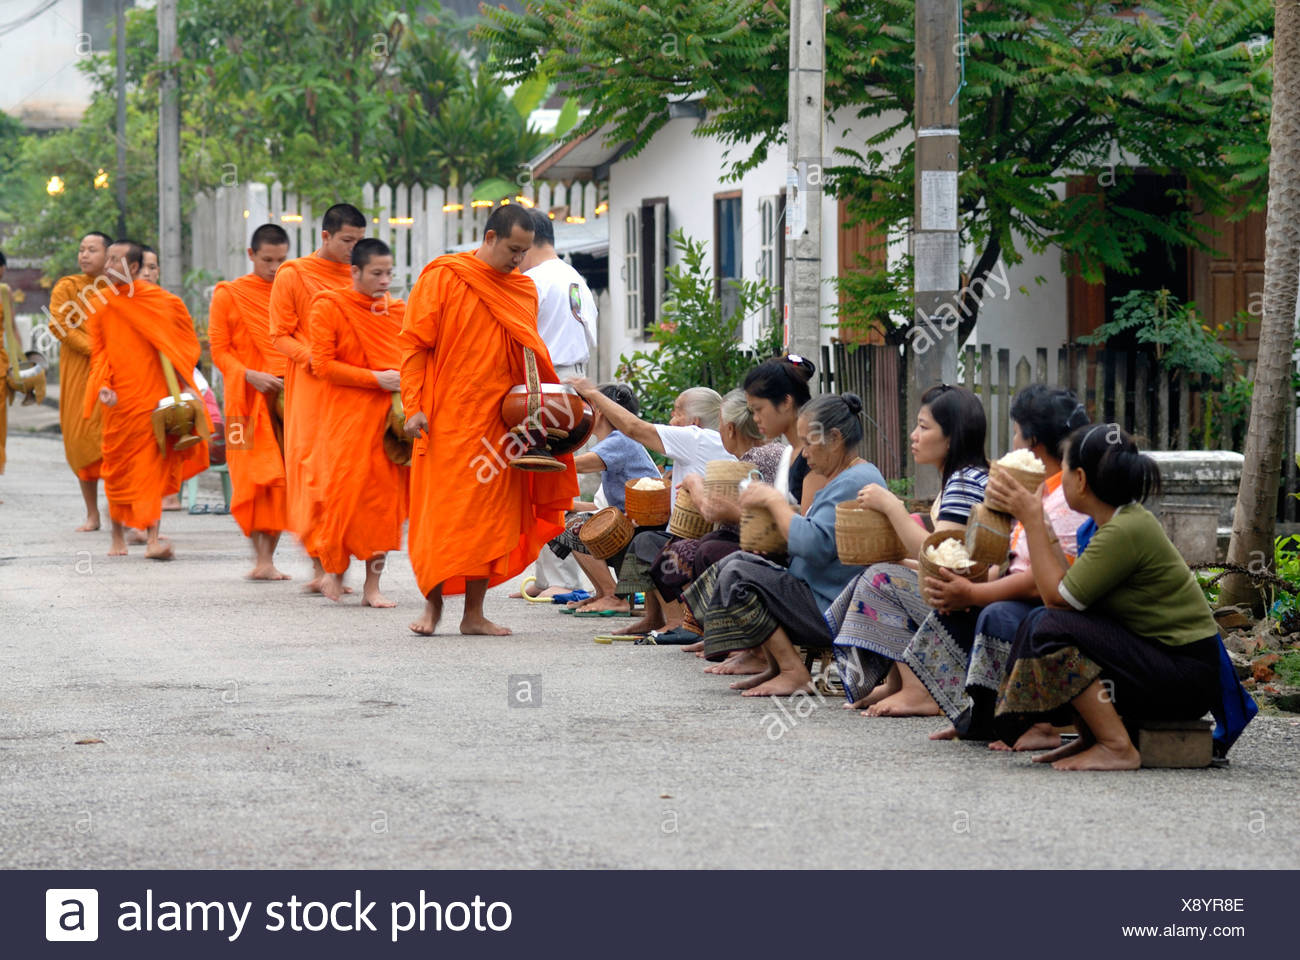 Morning alms collection, Thakbat of the monks and novices in the monasteries of Luang Prabang, men and women distributing food  Stock Photo